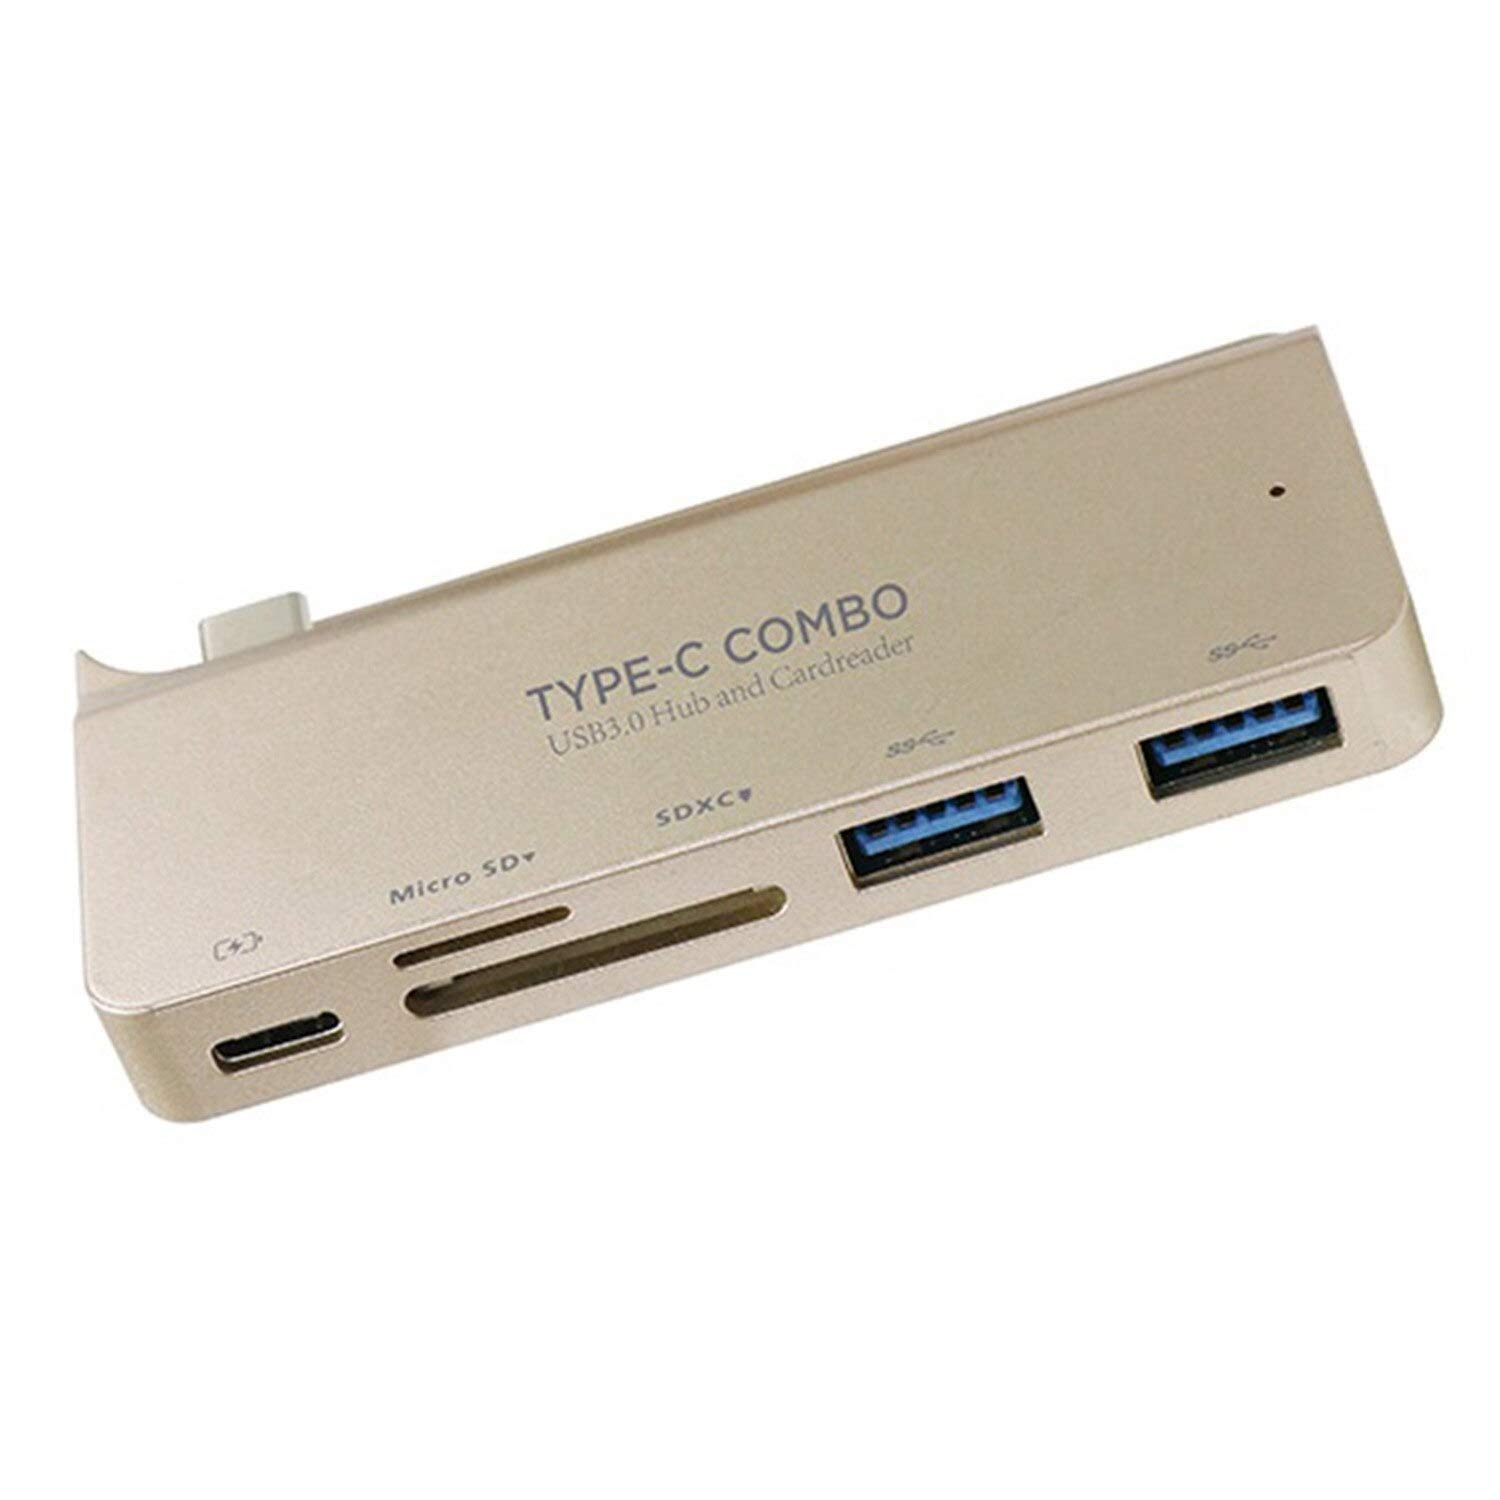 YOUKITTY Type-C HUB 2-Port Usb3.0+Sd//Tf Card Reader Charging Support Macbook12 64//5000